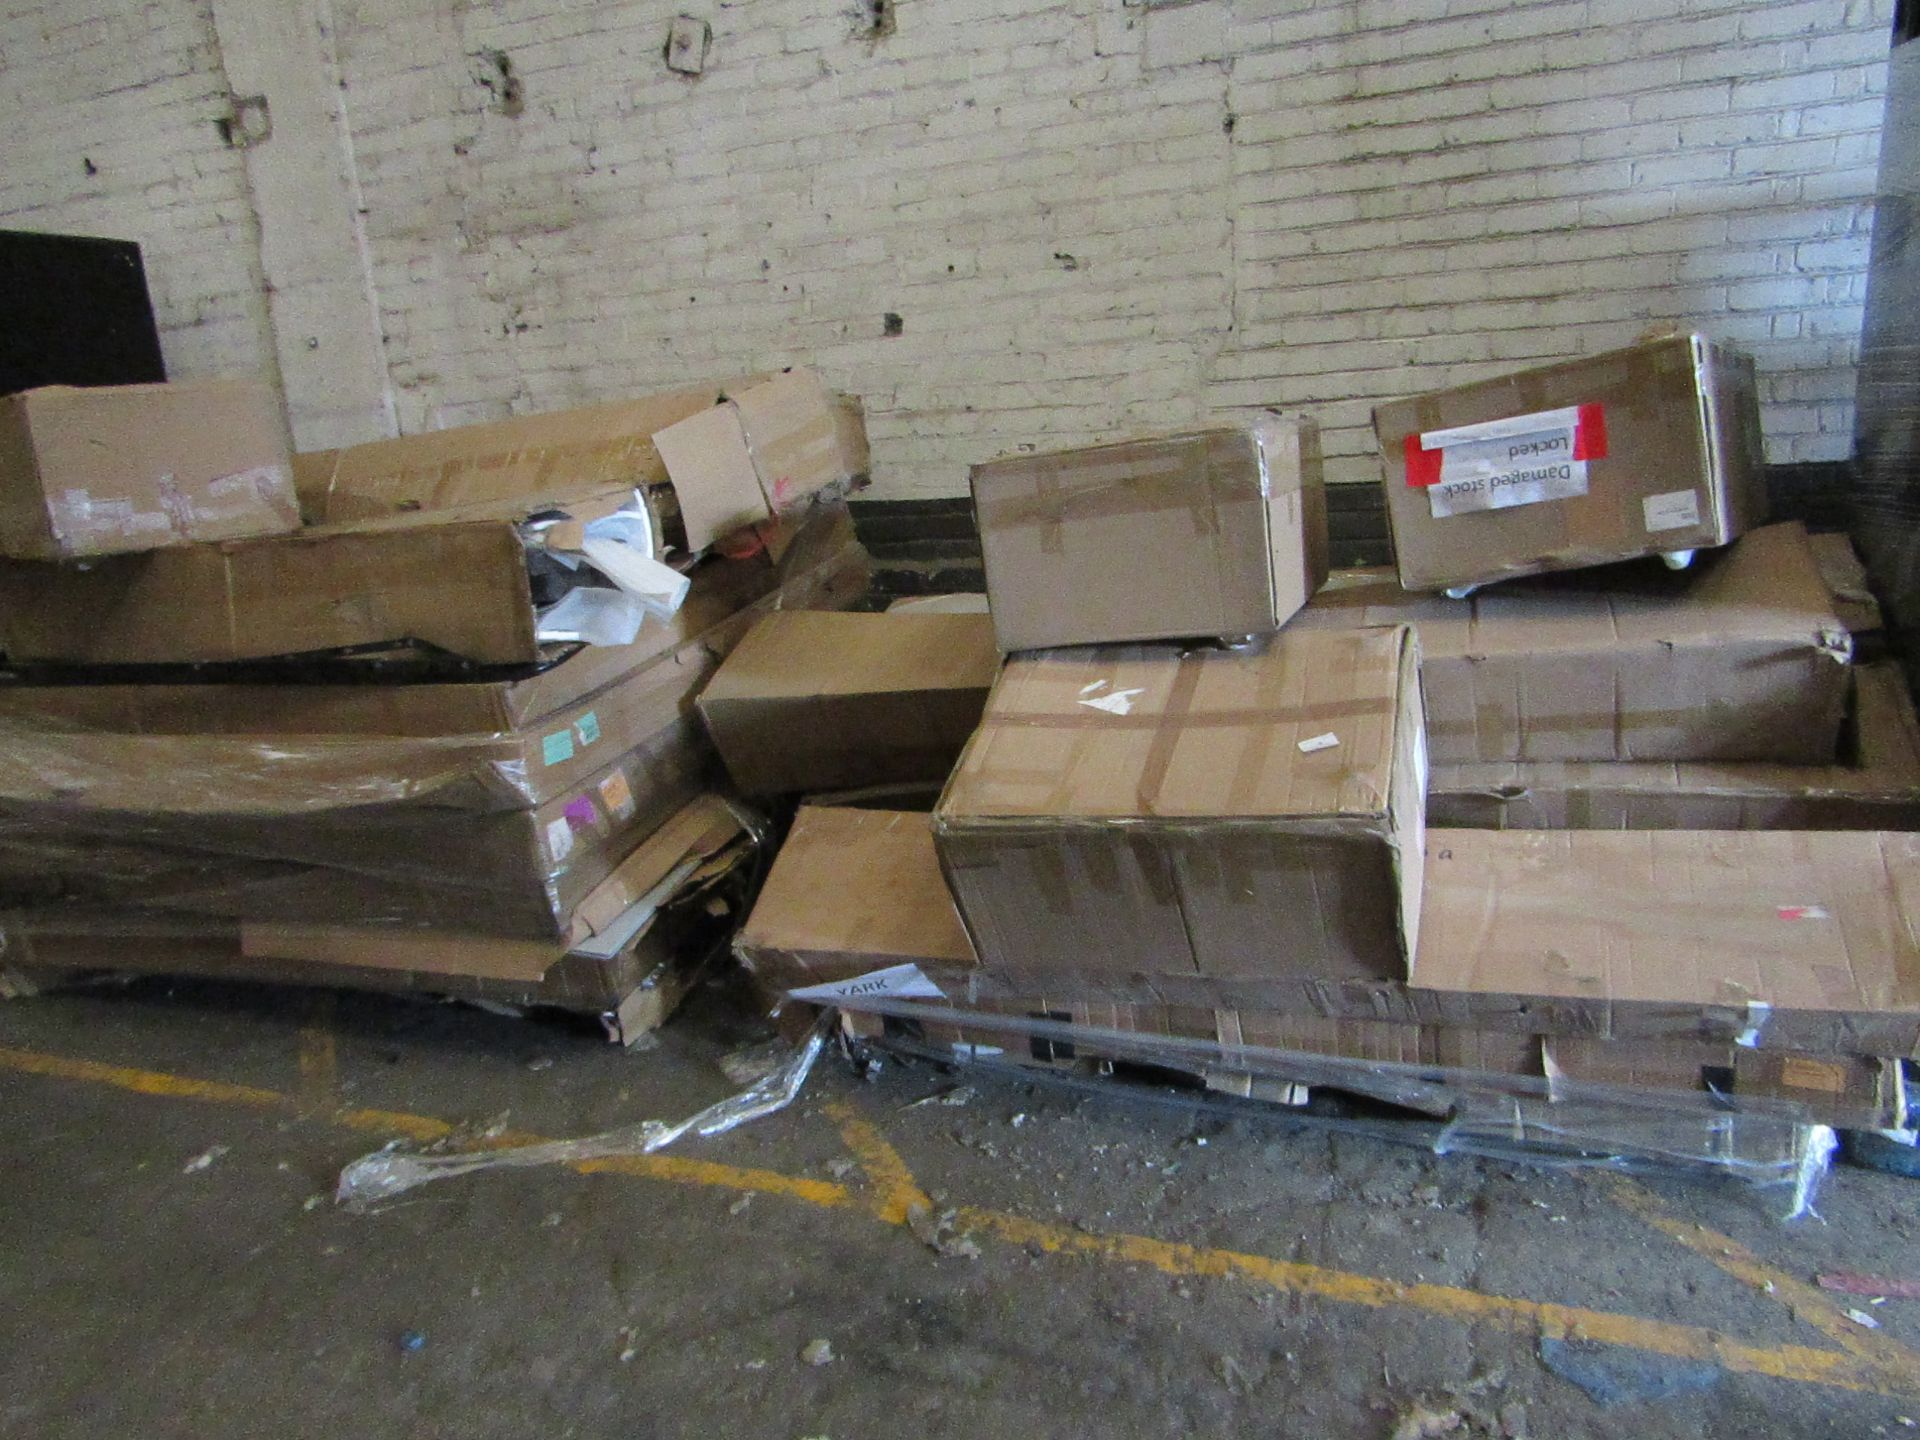 |  2x | OVERSIZED PALLETS OF YARK BUILD YOUR OWN CUSTOM BED PARTS, THE 2 PALLETS CONTAINS MIXTURE OF